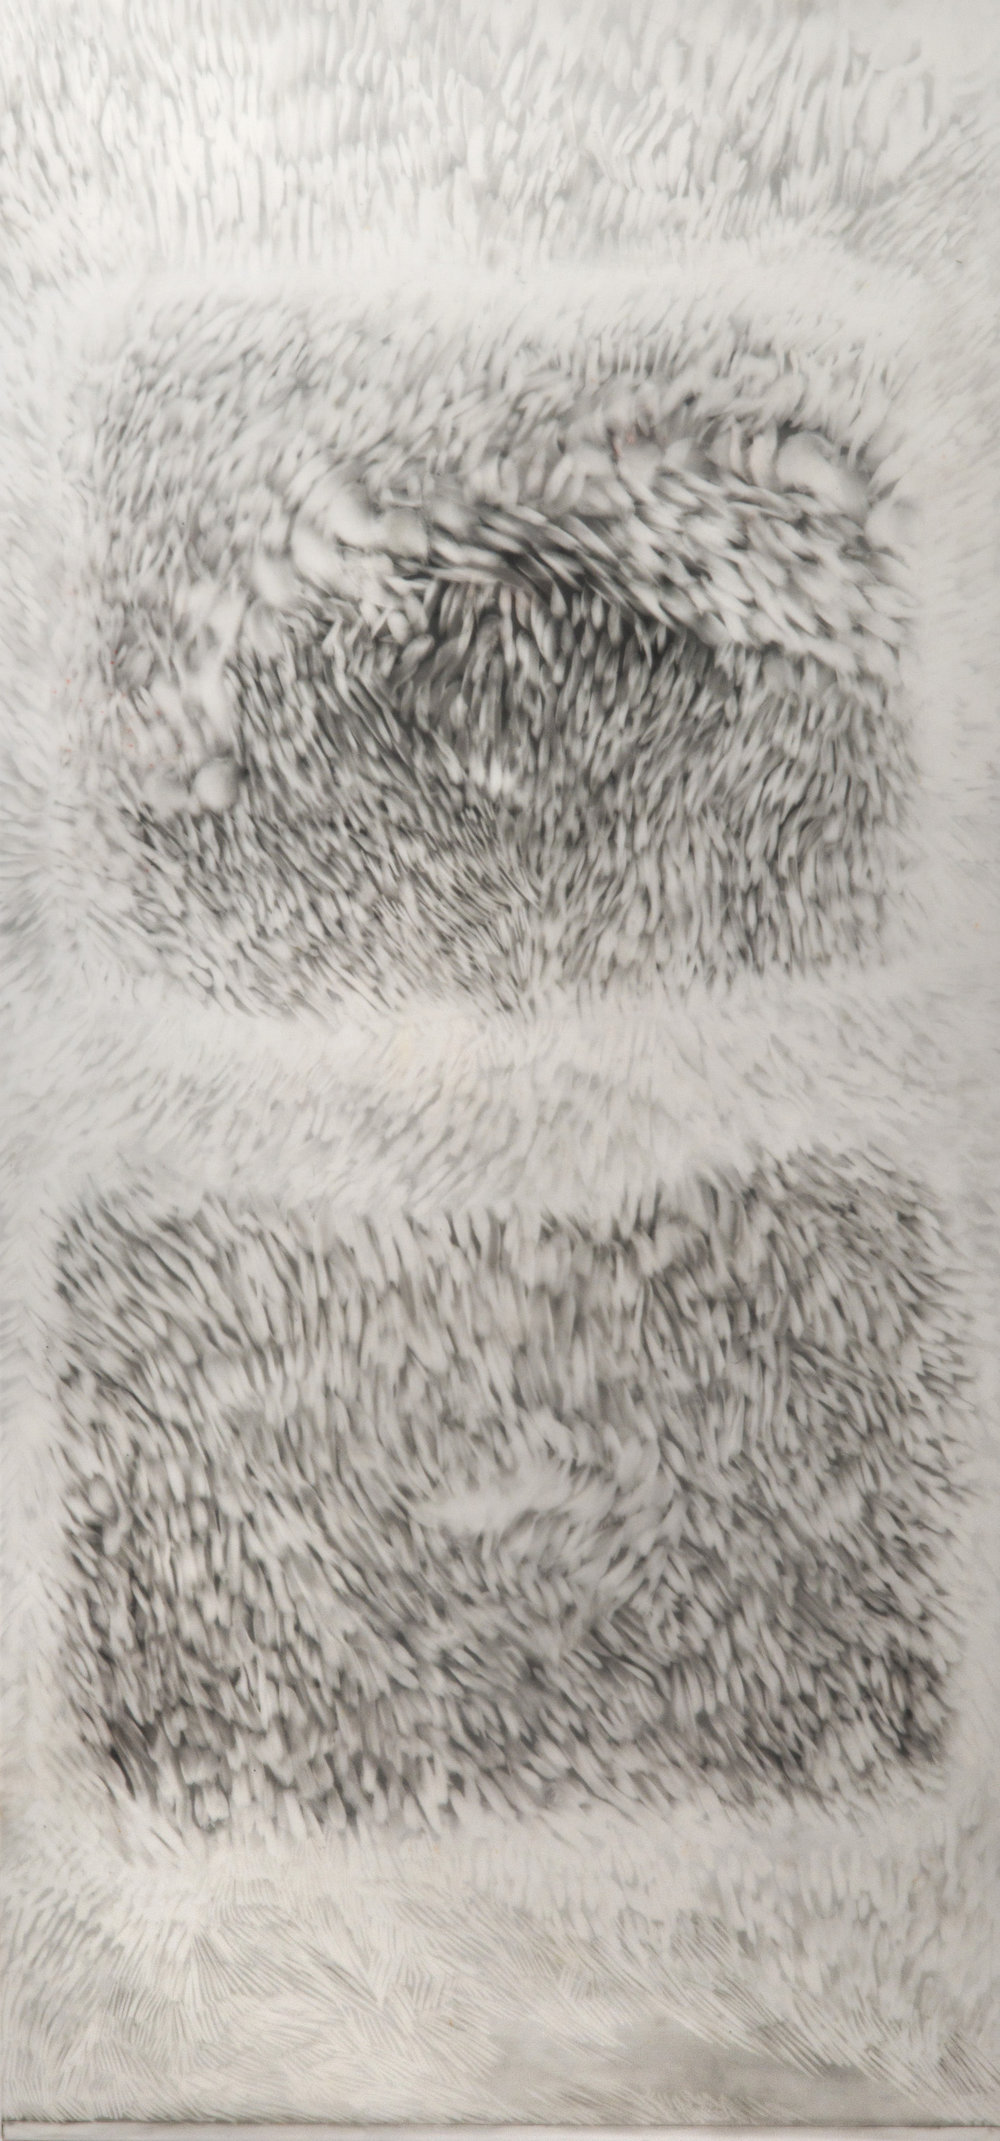 Observed and Recorded Permutation of the Holy Spirit I (9.5 inches x 21 inches-pastel and graphite erasings on duralar)